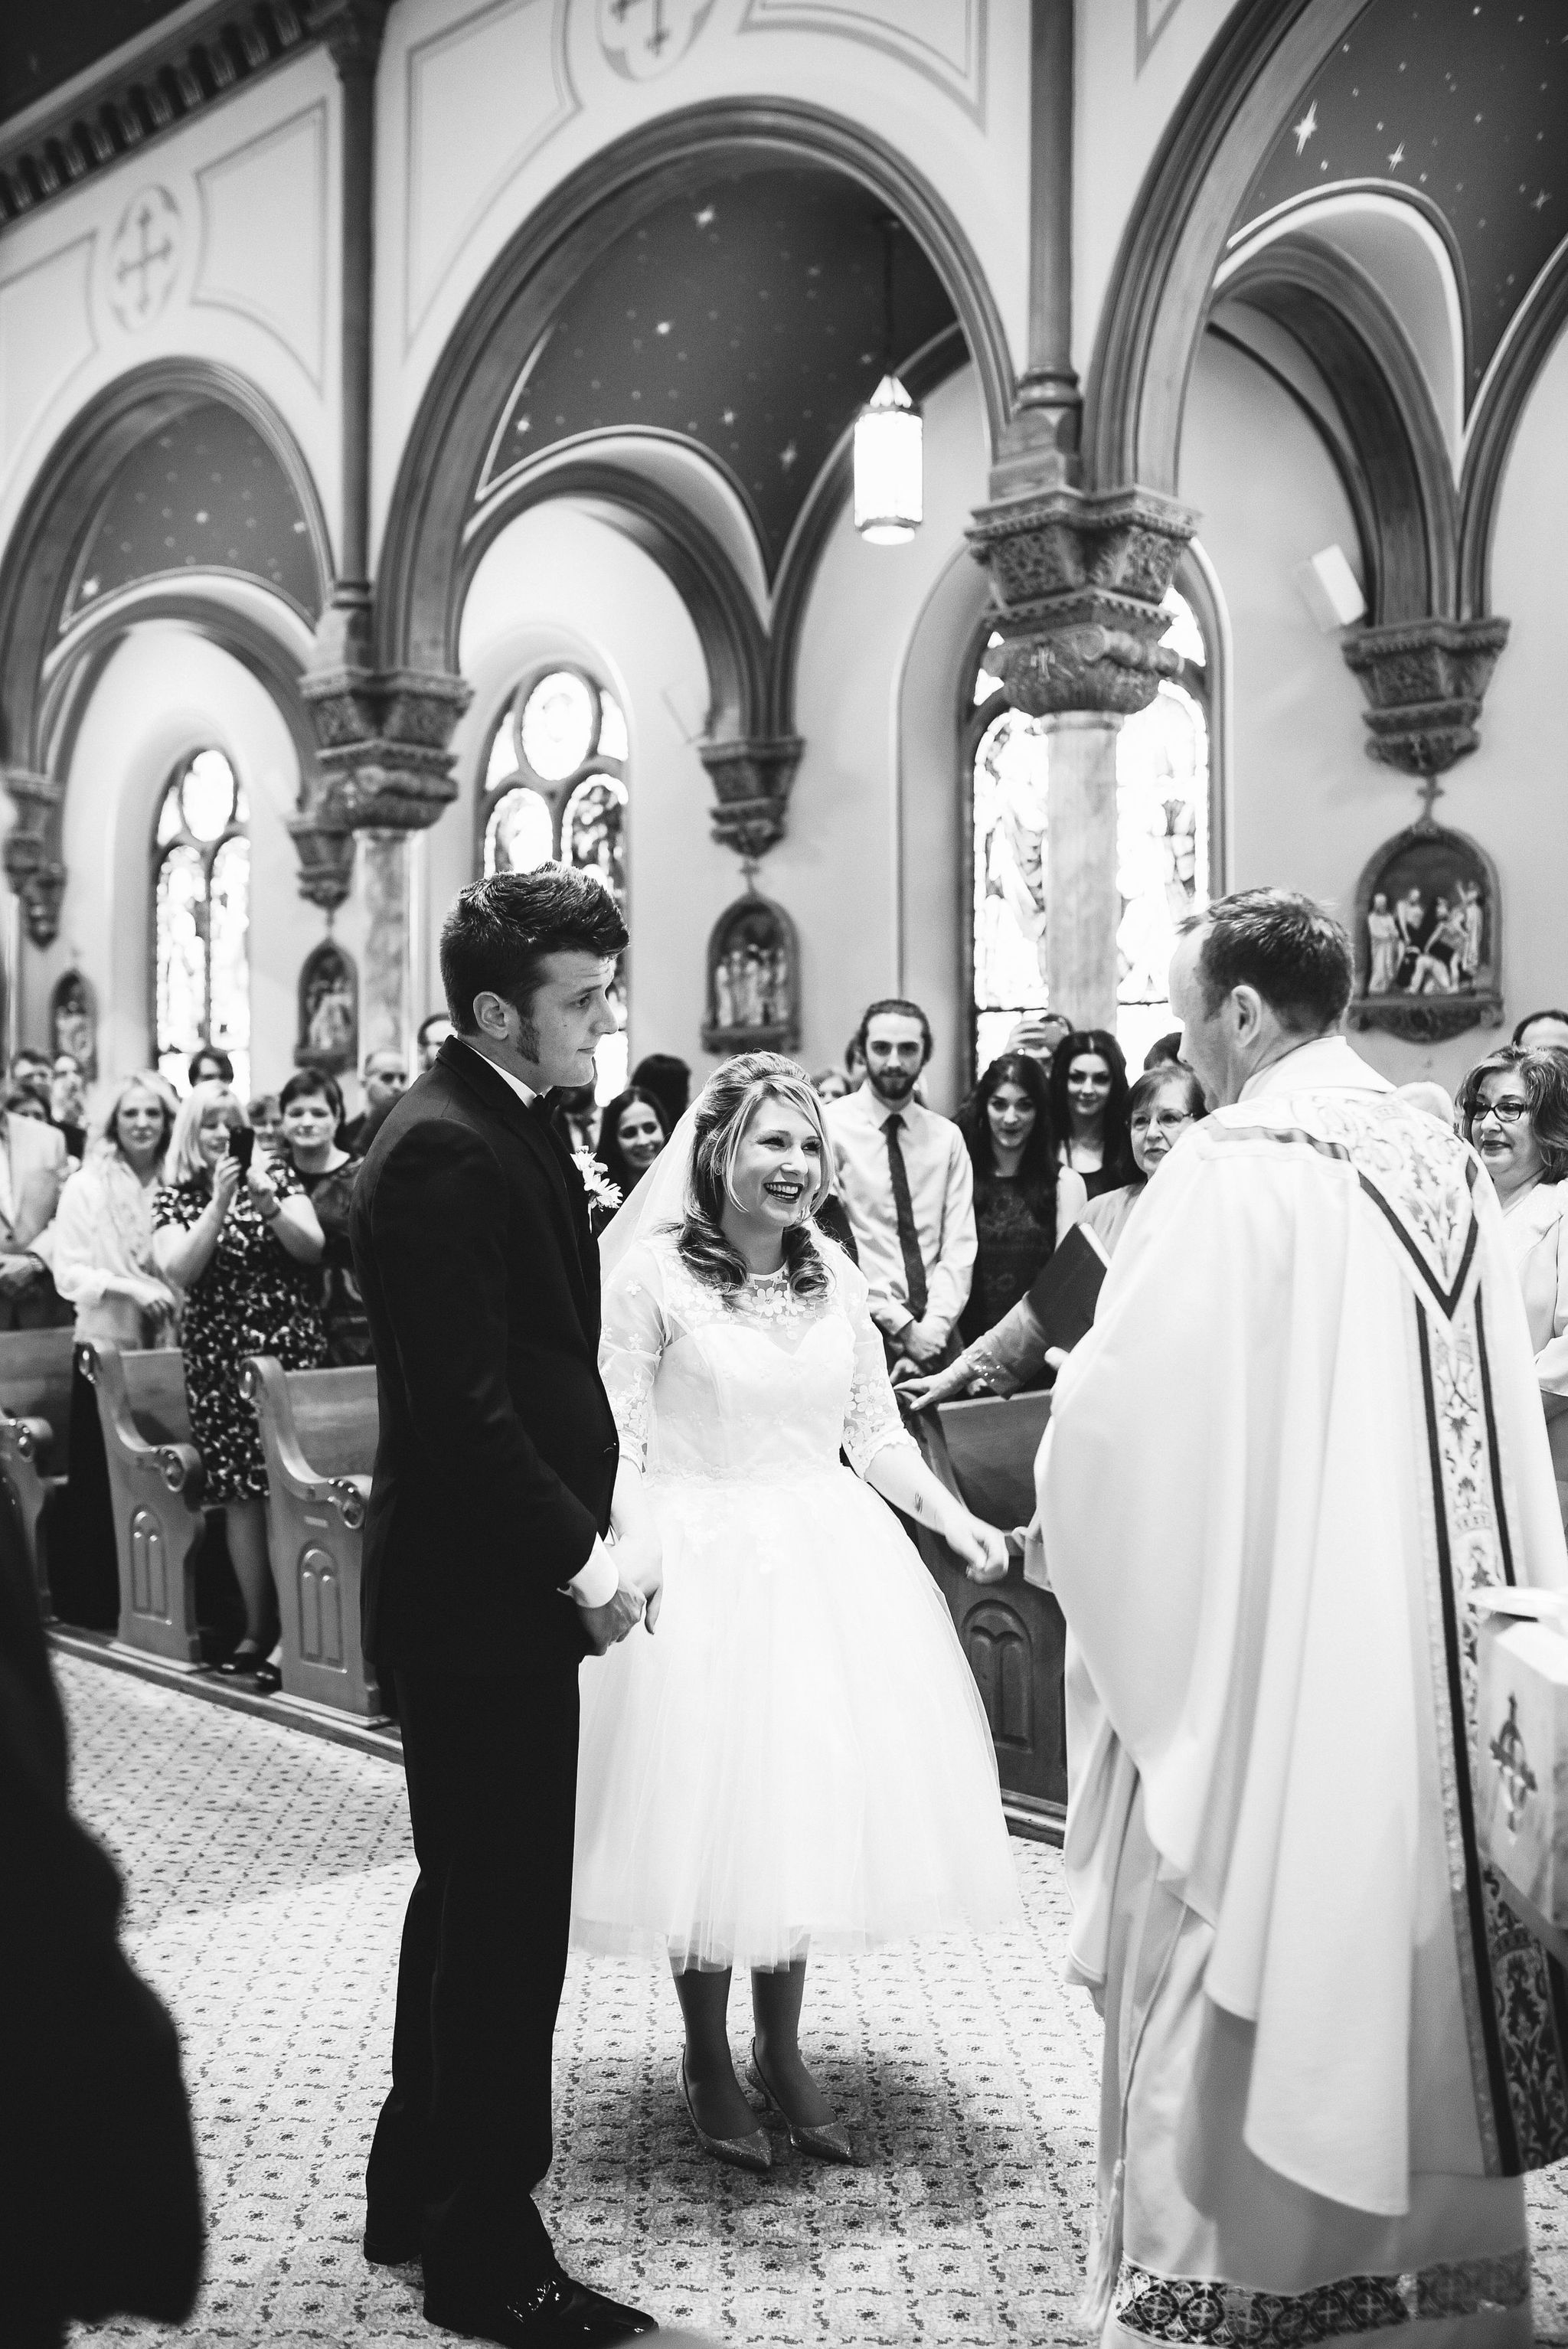 Baltimore, Church Wedding, Maryland Wedding Photographer, Vintage, Classic, 50s Style, Bride and Groom Standing Together, Black and White Photo